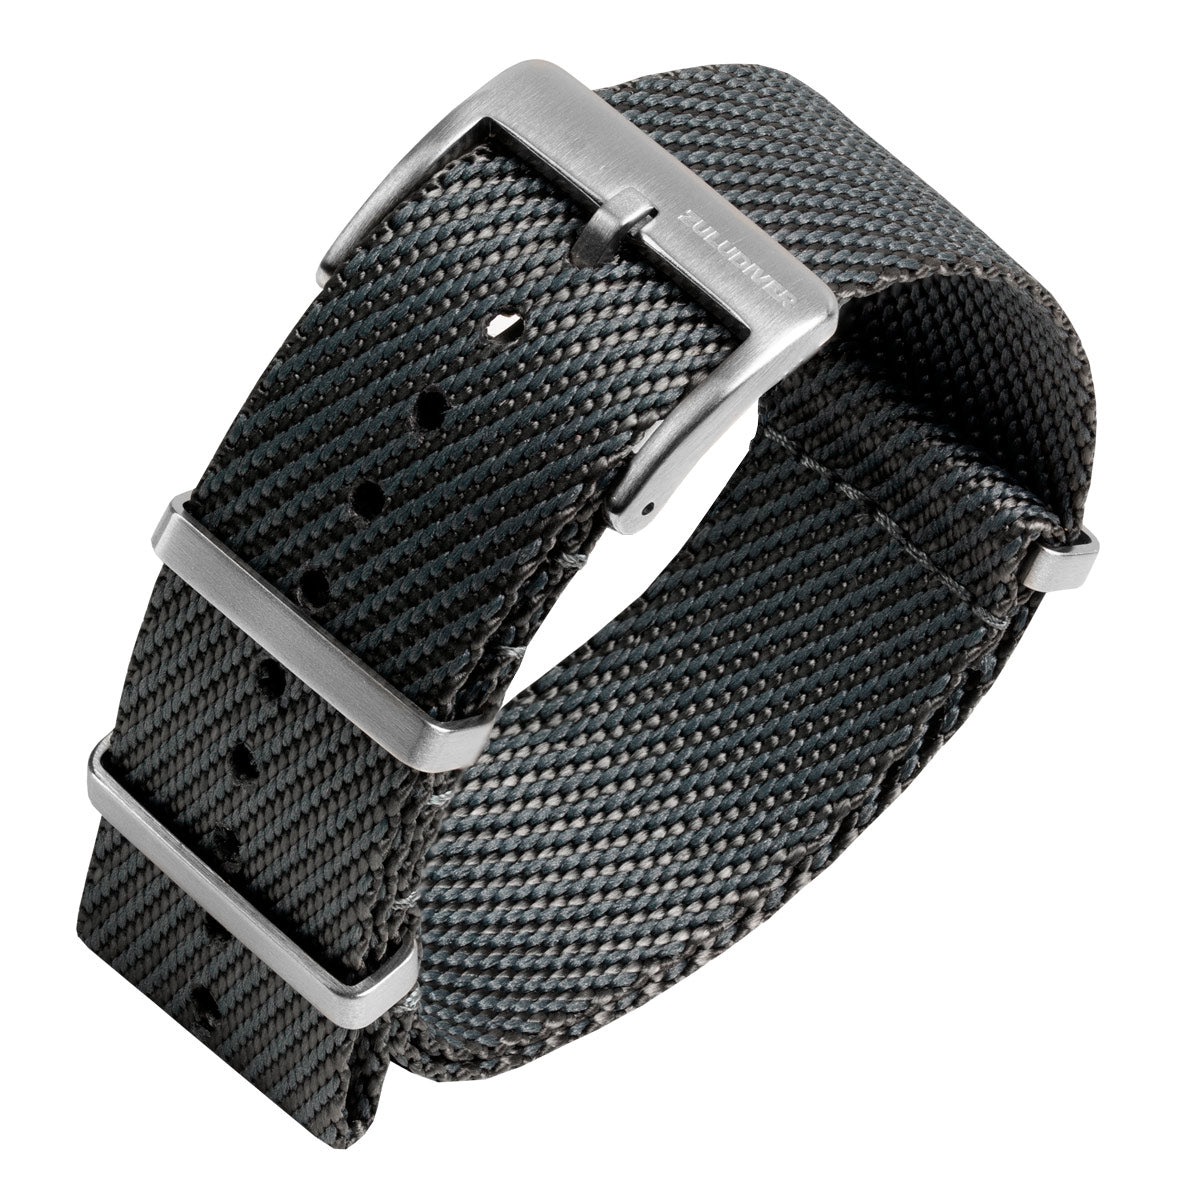 Sennen By Zuludiver Nato Style Watch Strap